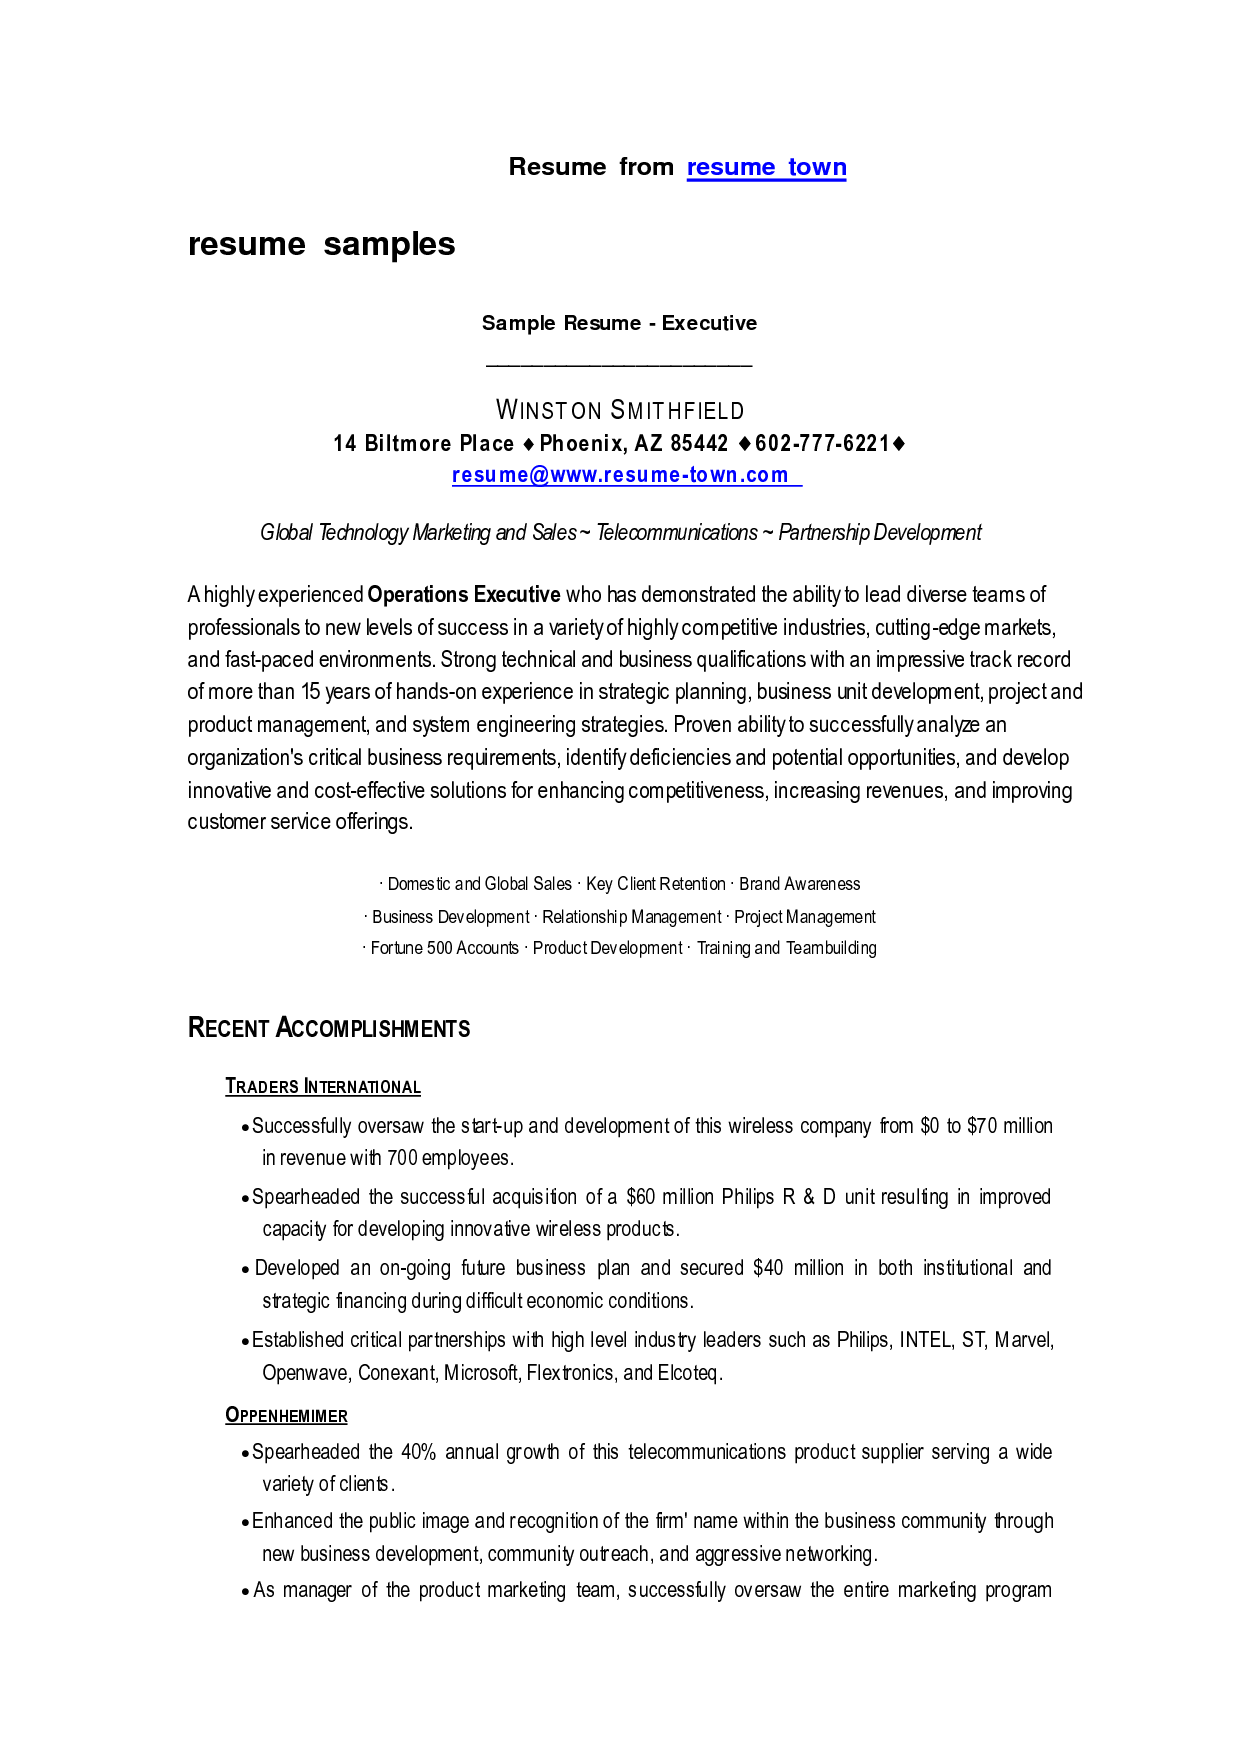 Free Downloadable Resume Templates Best Template HDResume Templates